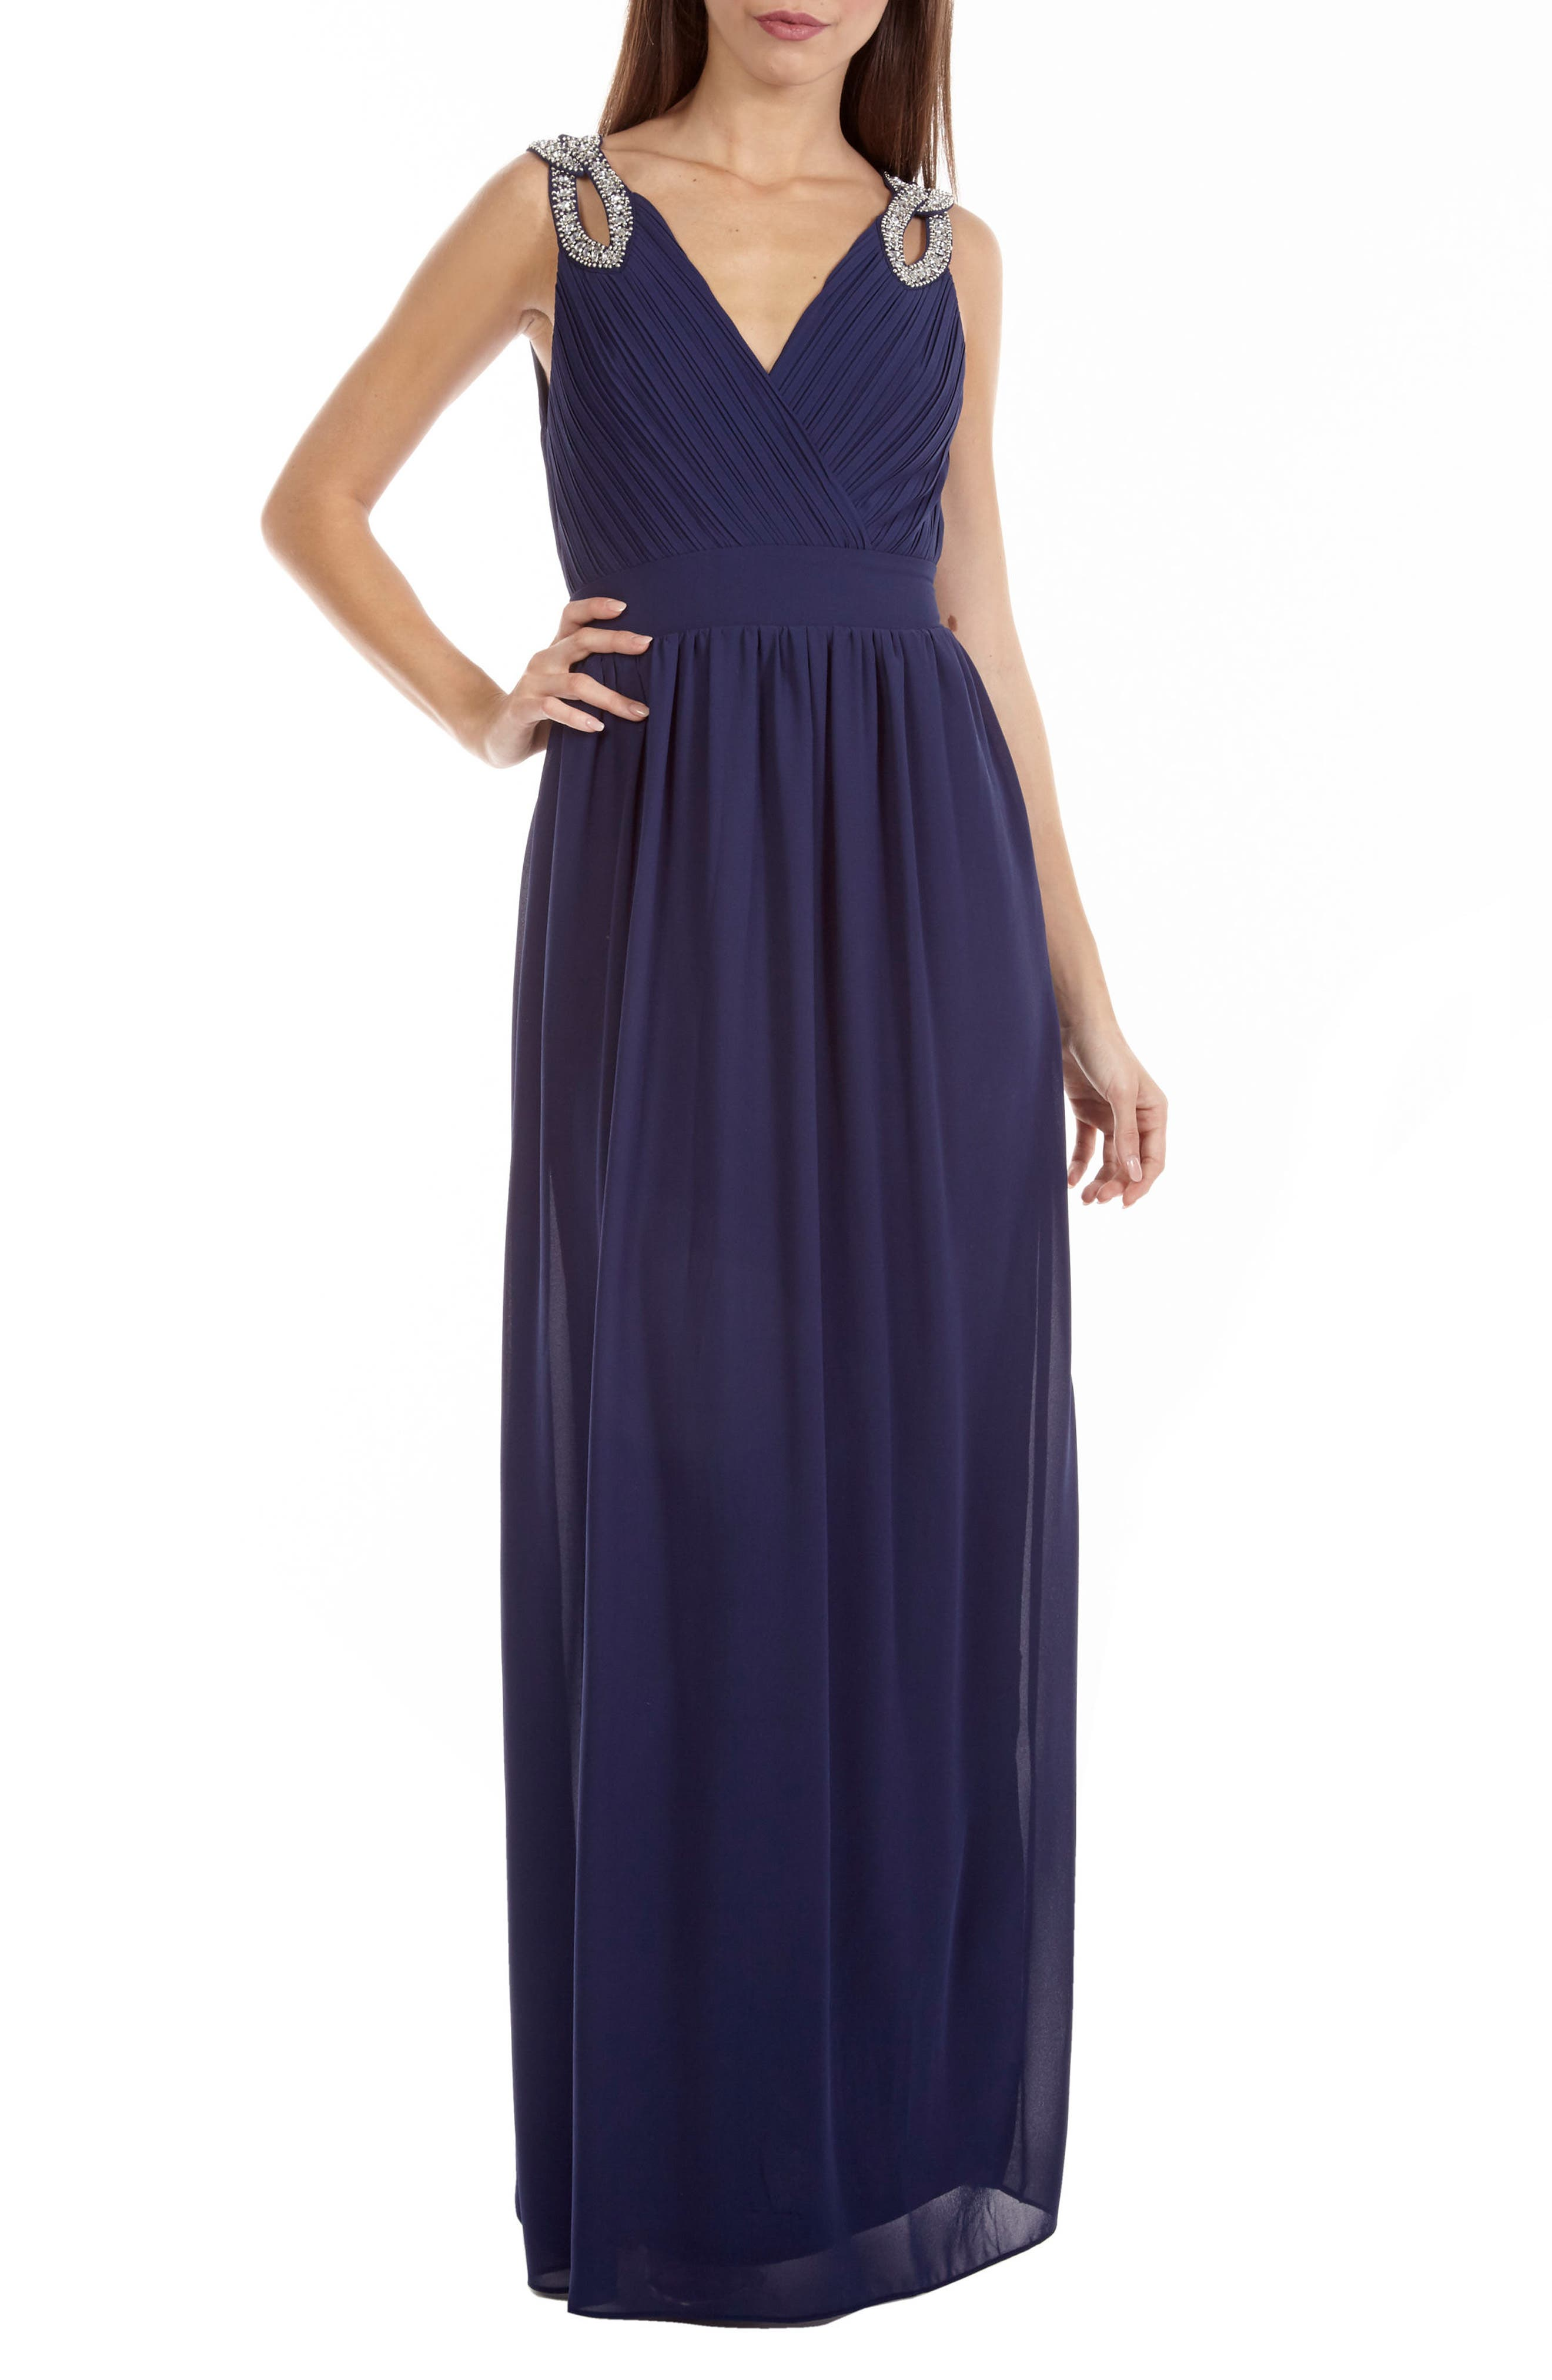 Debbie Embellished Pleated Chiffon Gown,                         Main,                         color, 410